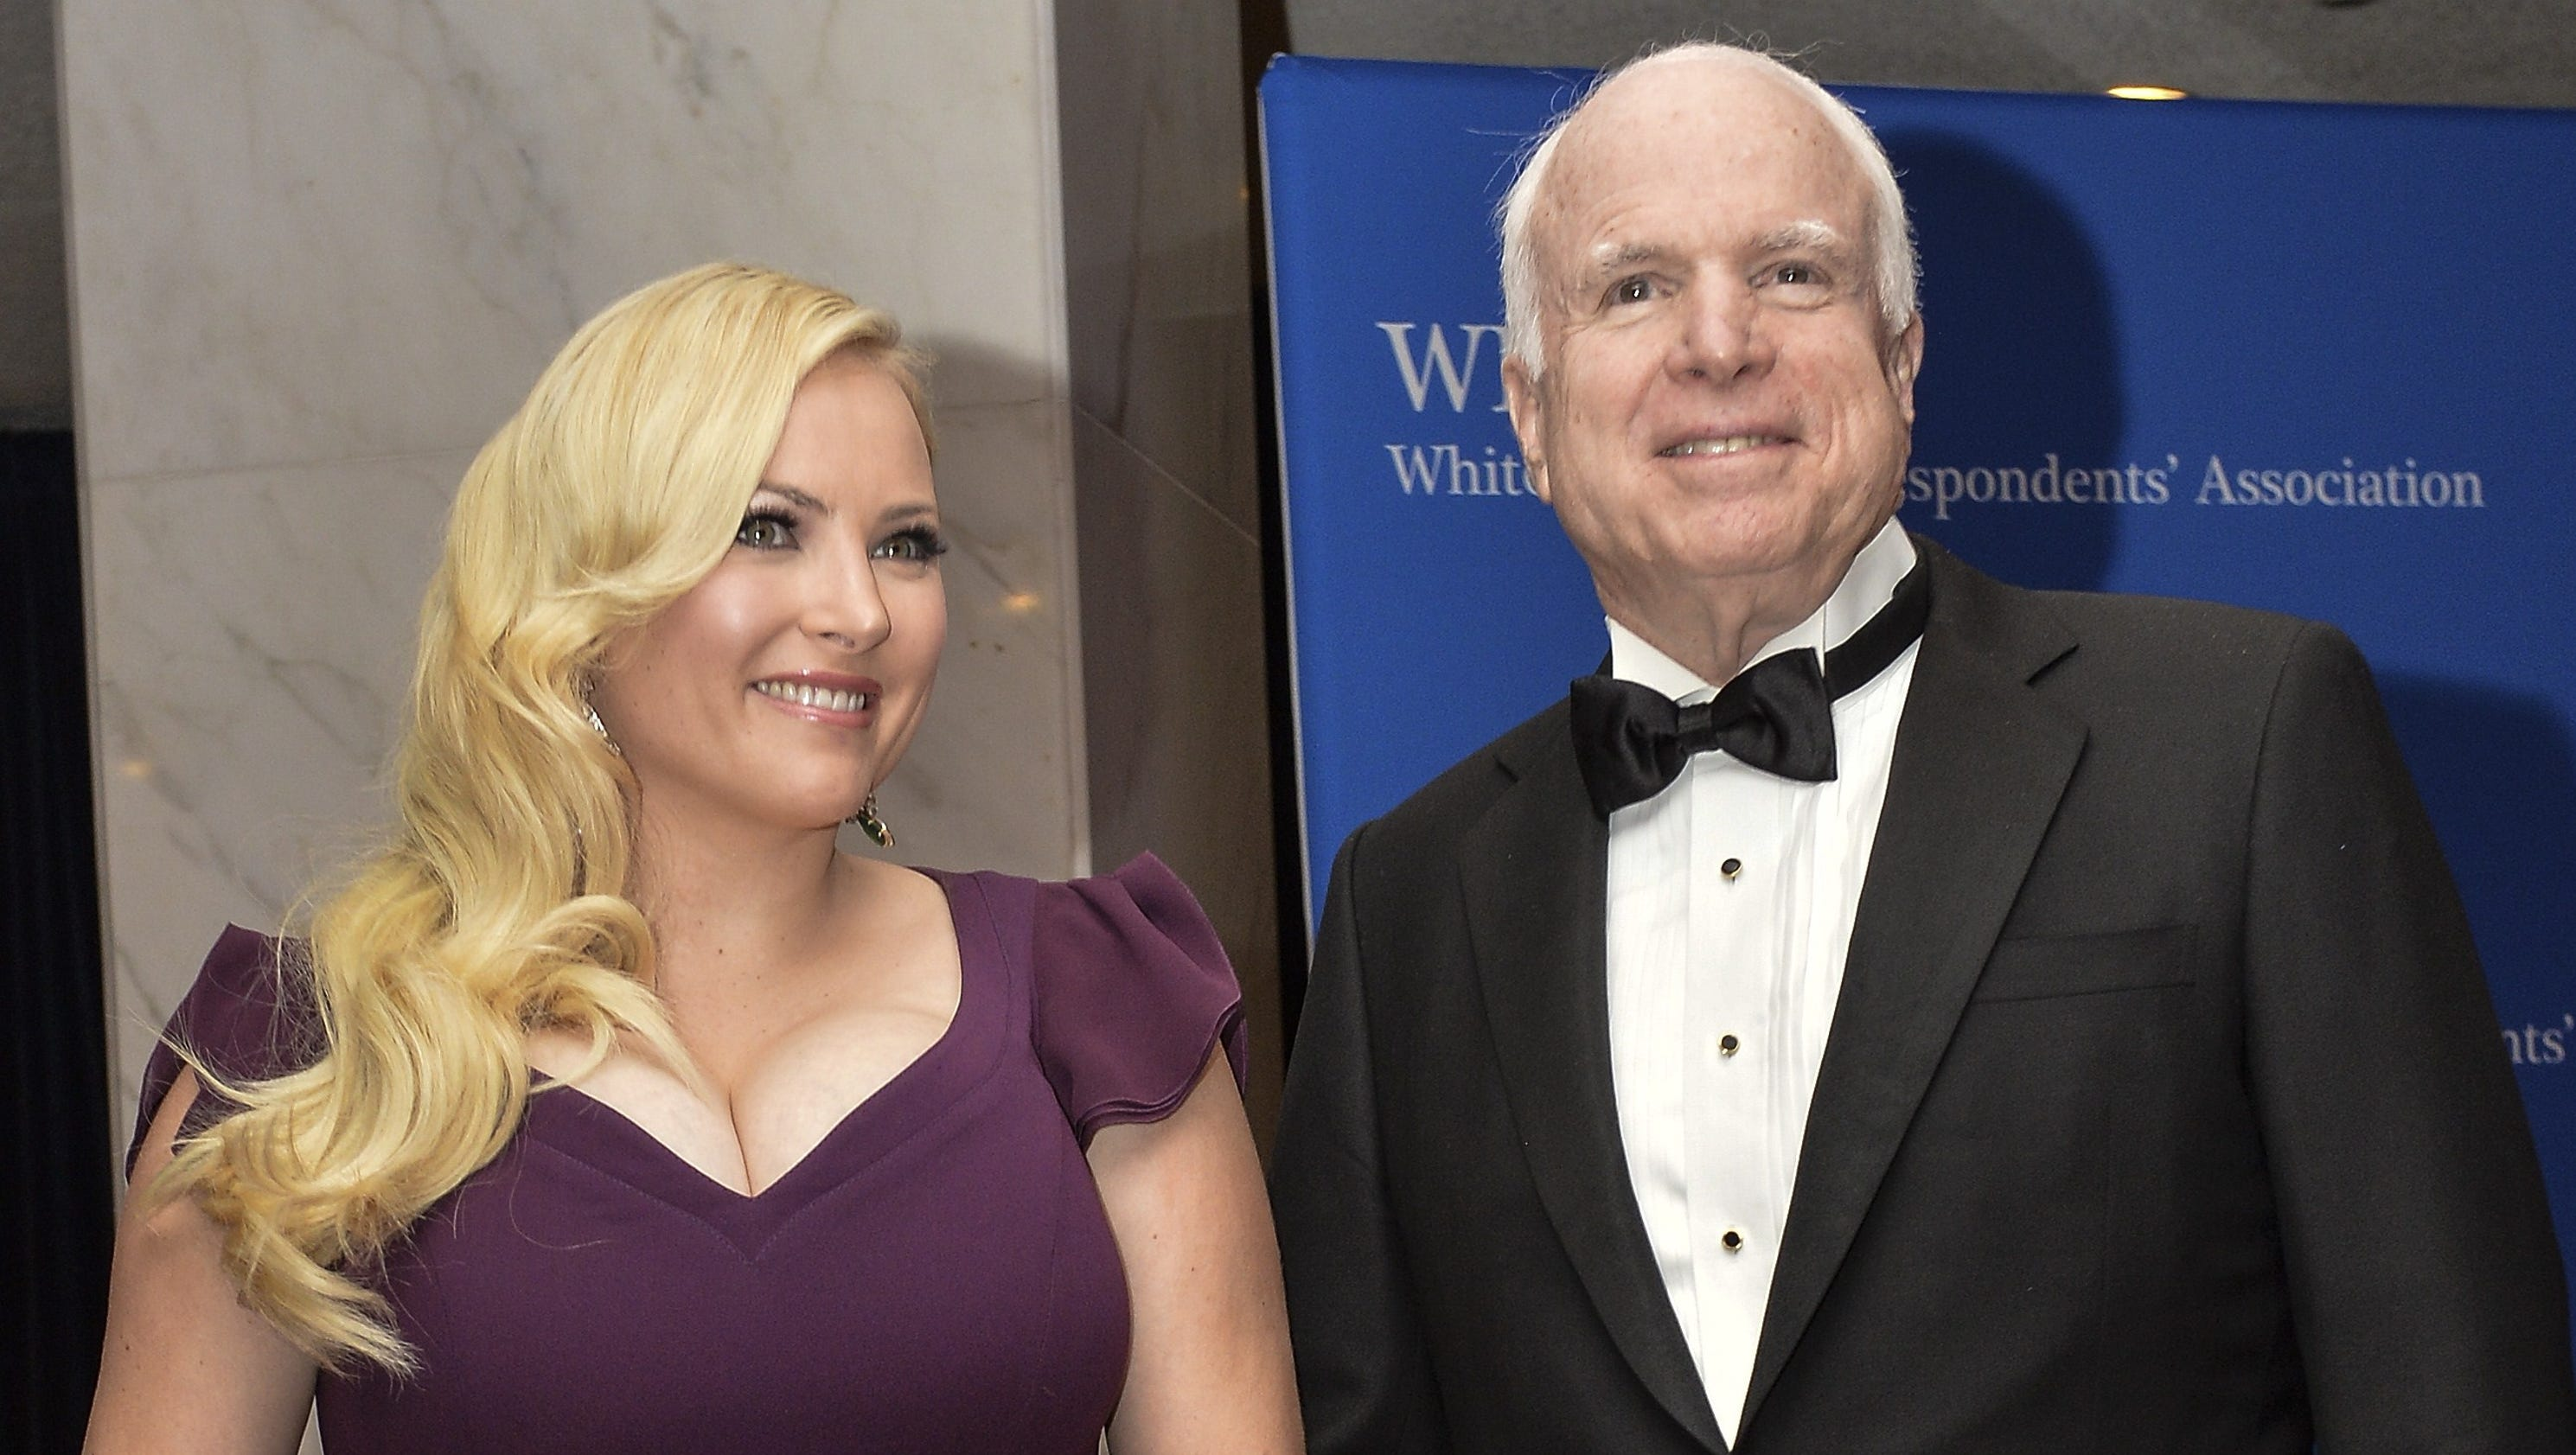 Meghan McCain: Cancer will not make my dad surrender. 'Nothing ever has.'